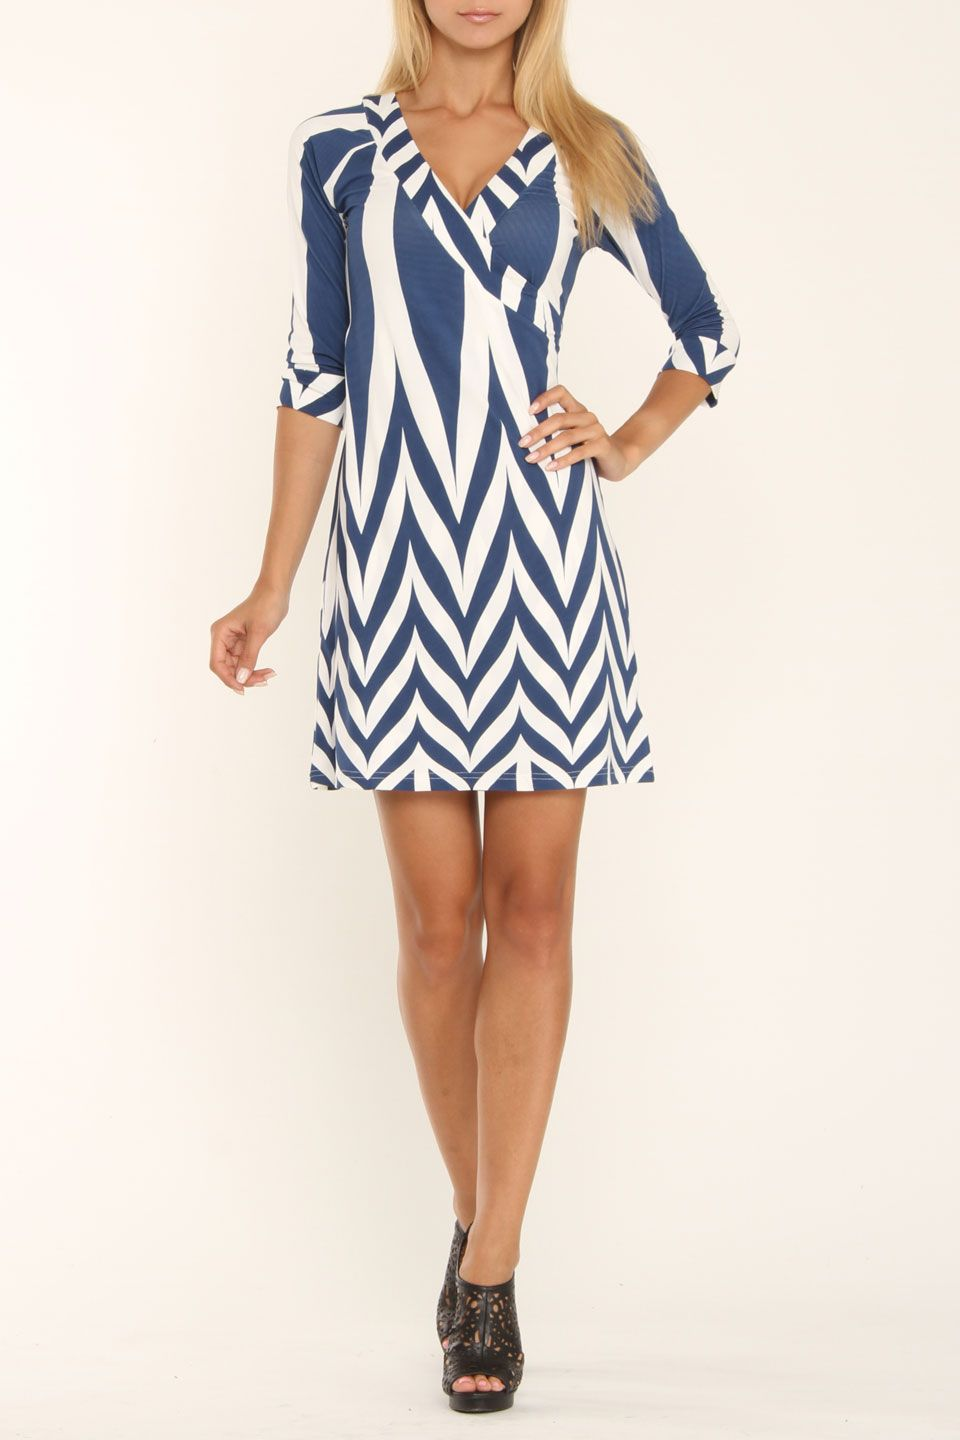 Coco Tashi Sonia Dress In Blue White Beyond The Rack